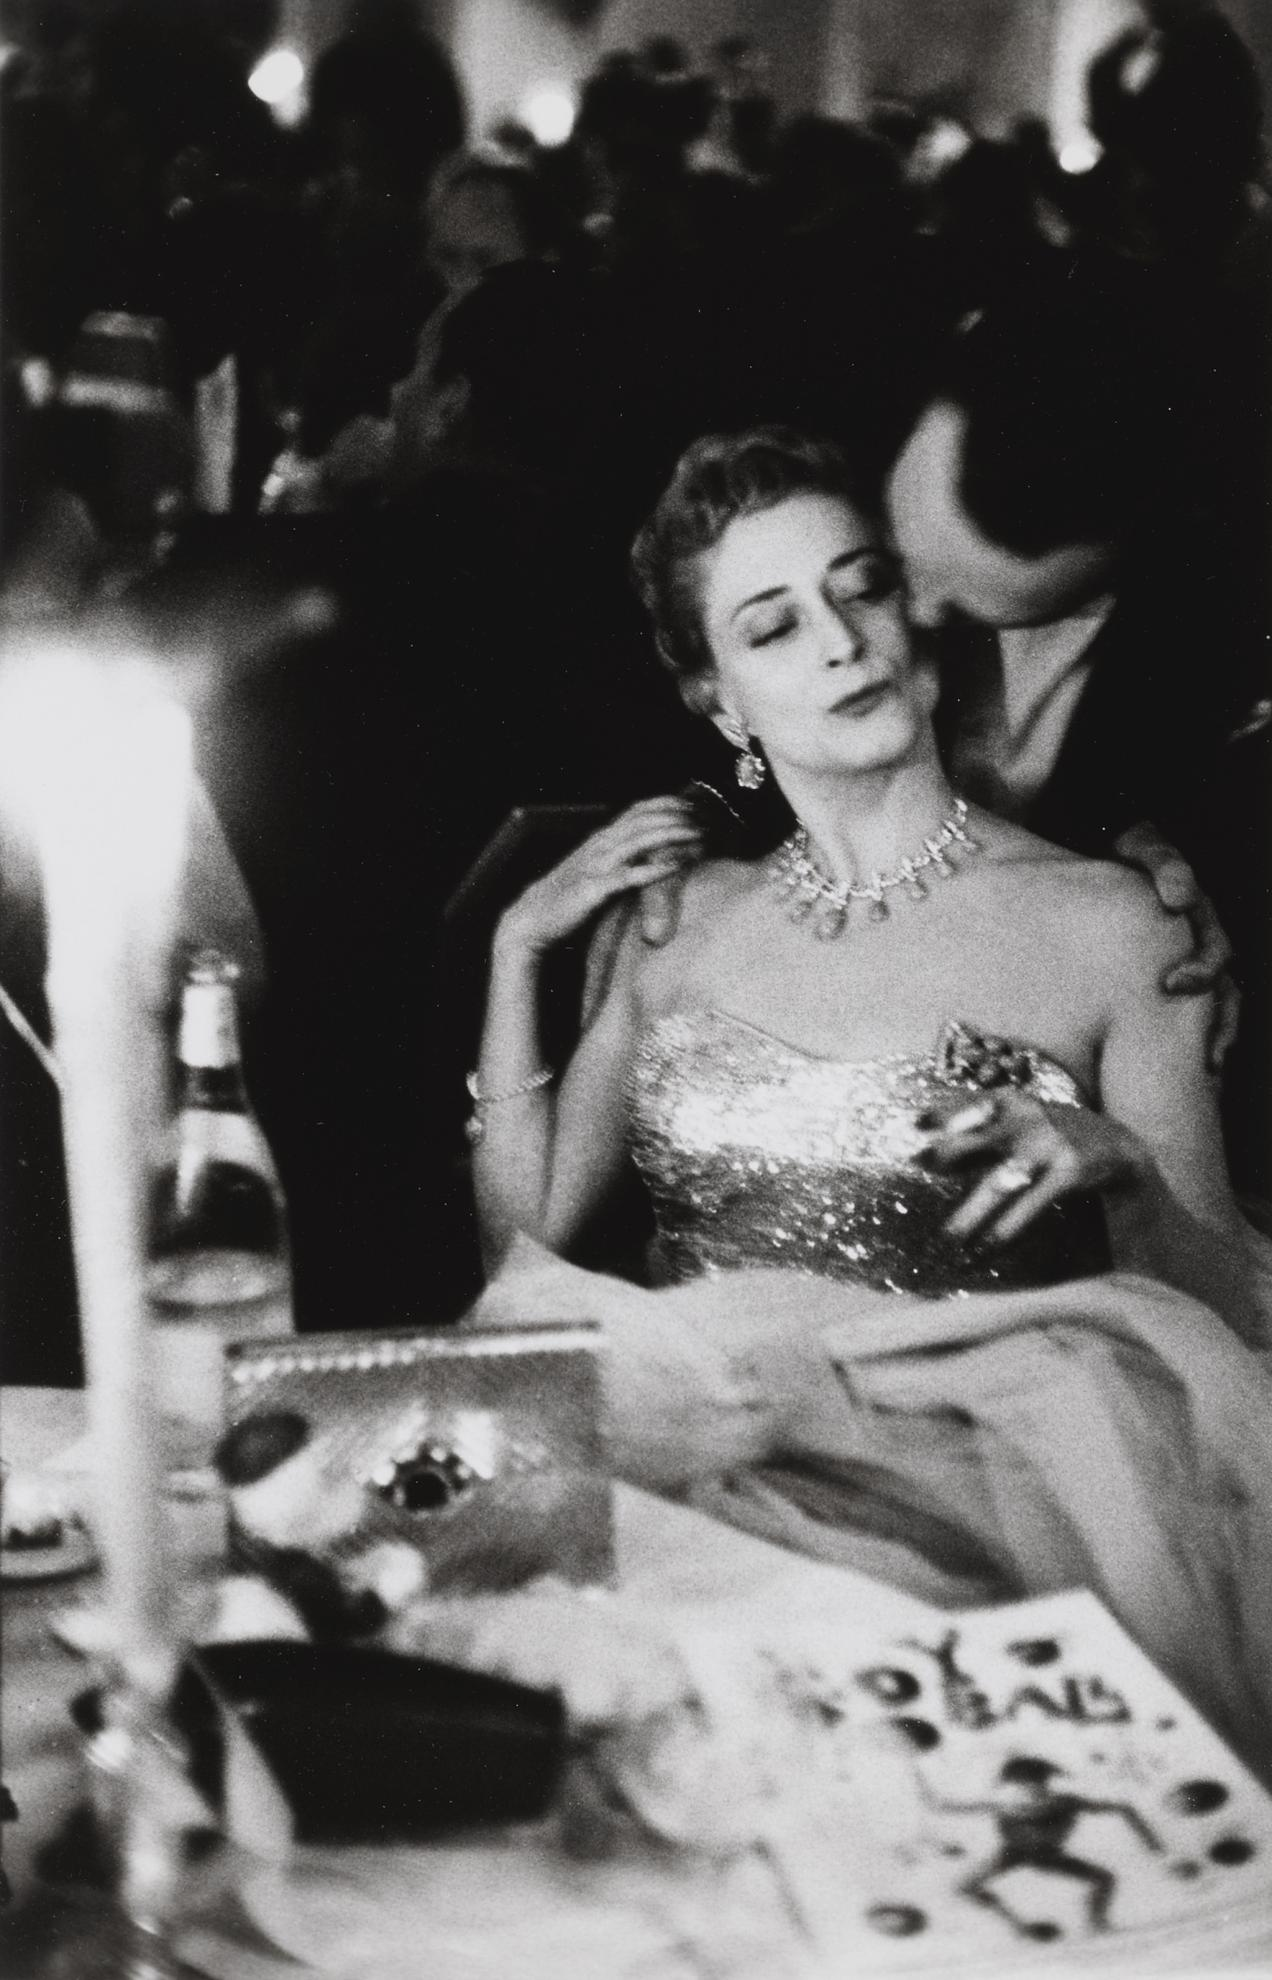 Robert Frank-Nyc (Charity Ball, New York City)-1955